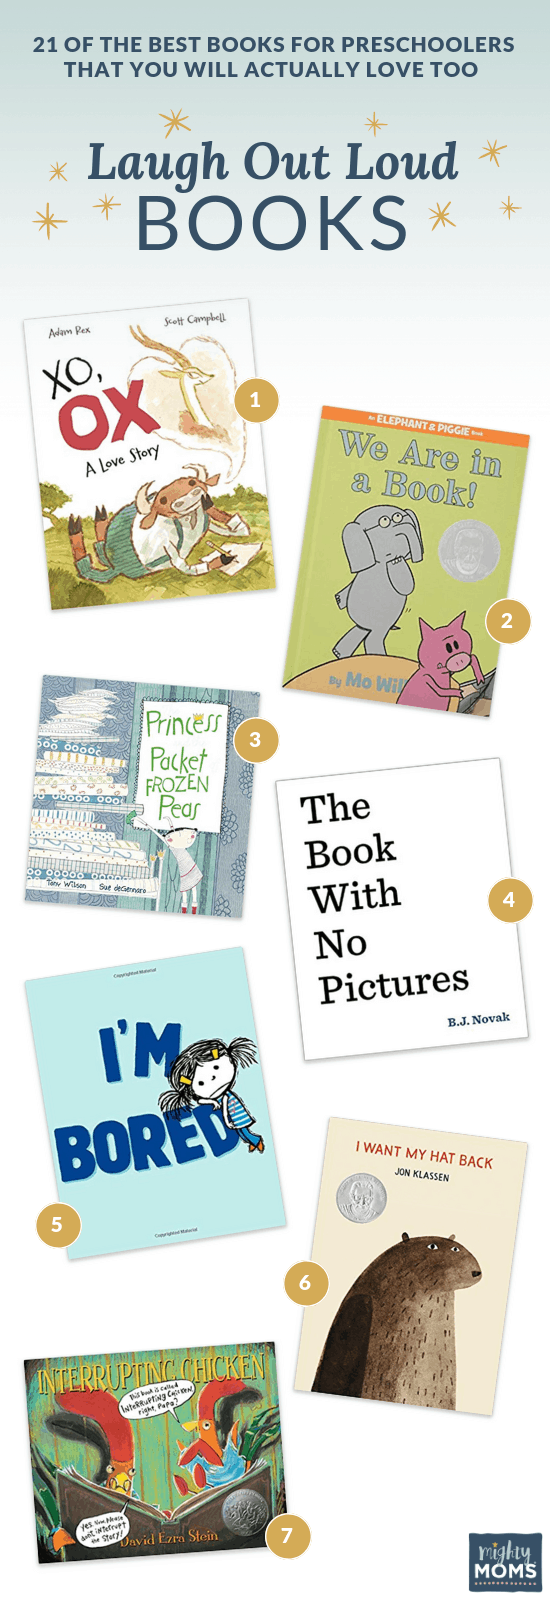 Best Preschool Books for Chuckles - MightyMoms.club